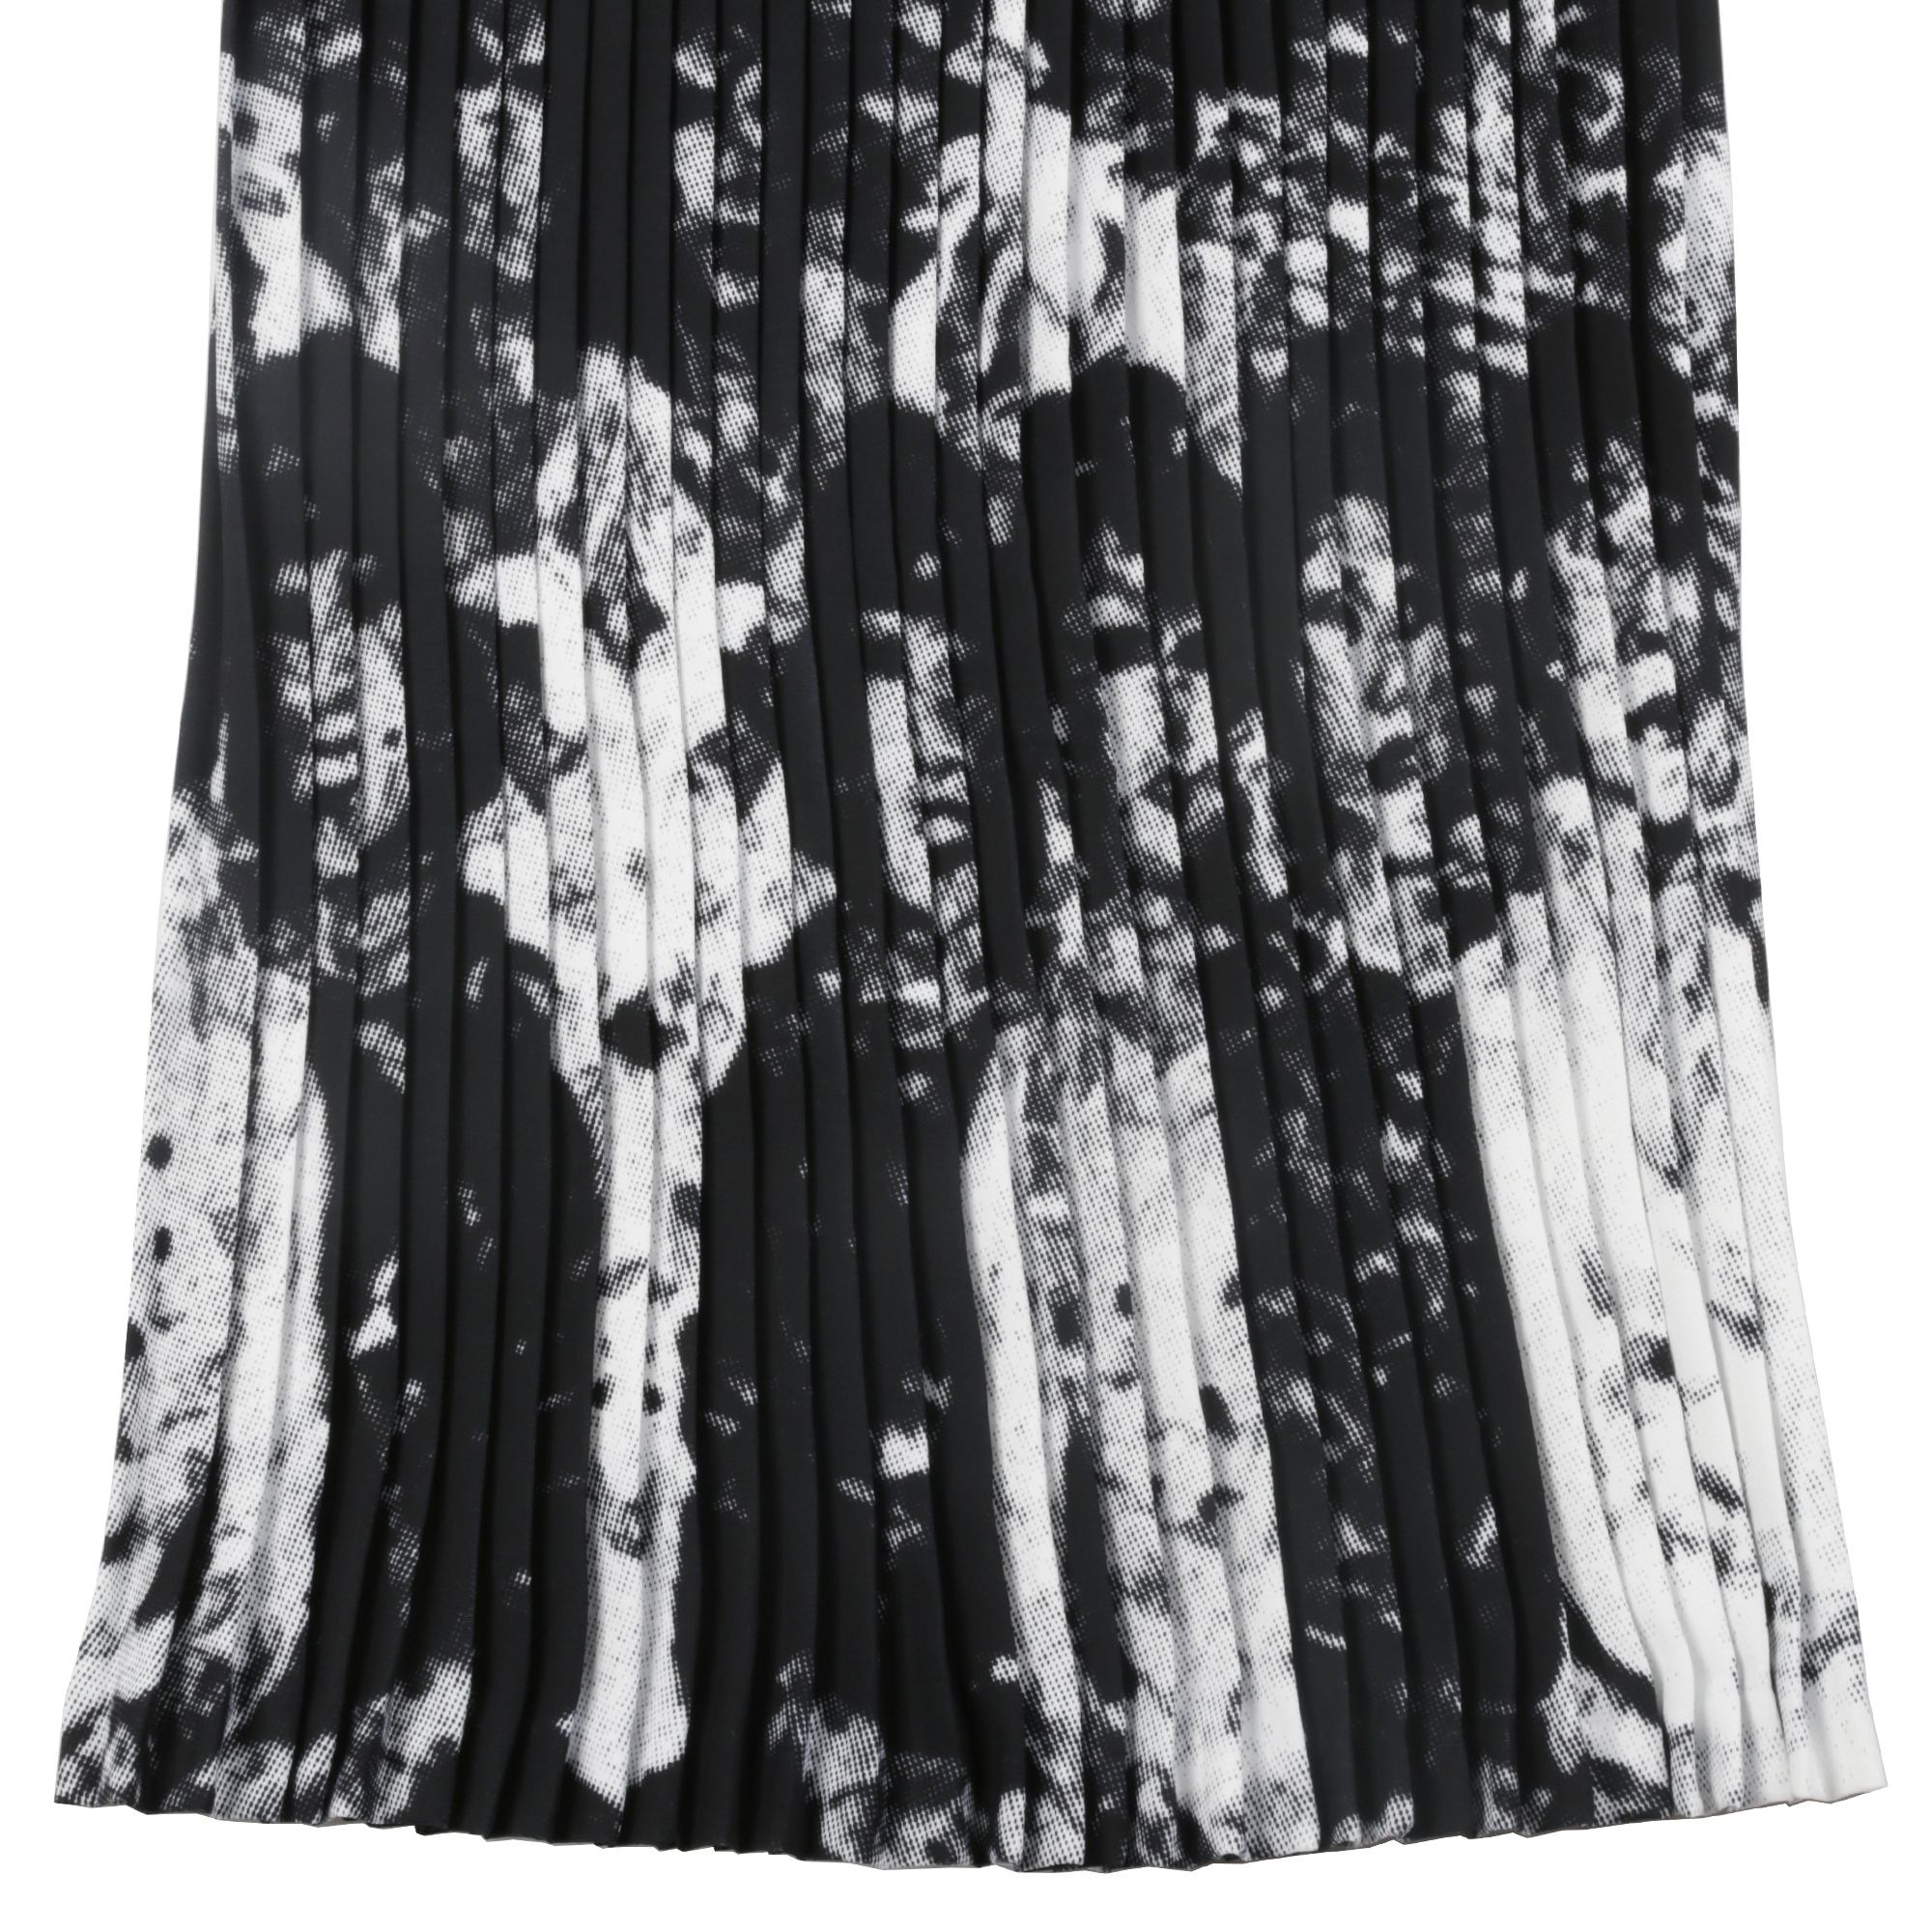 Untitled Pleats Skirt, 2019_3.jpg